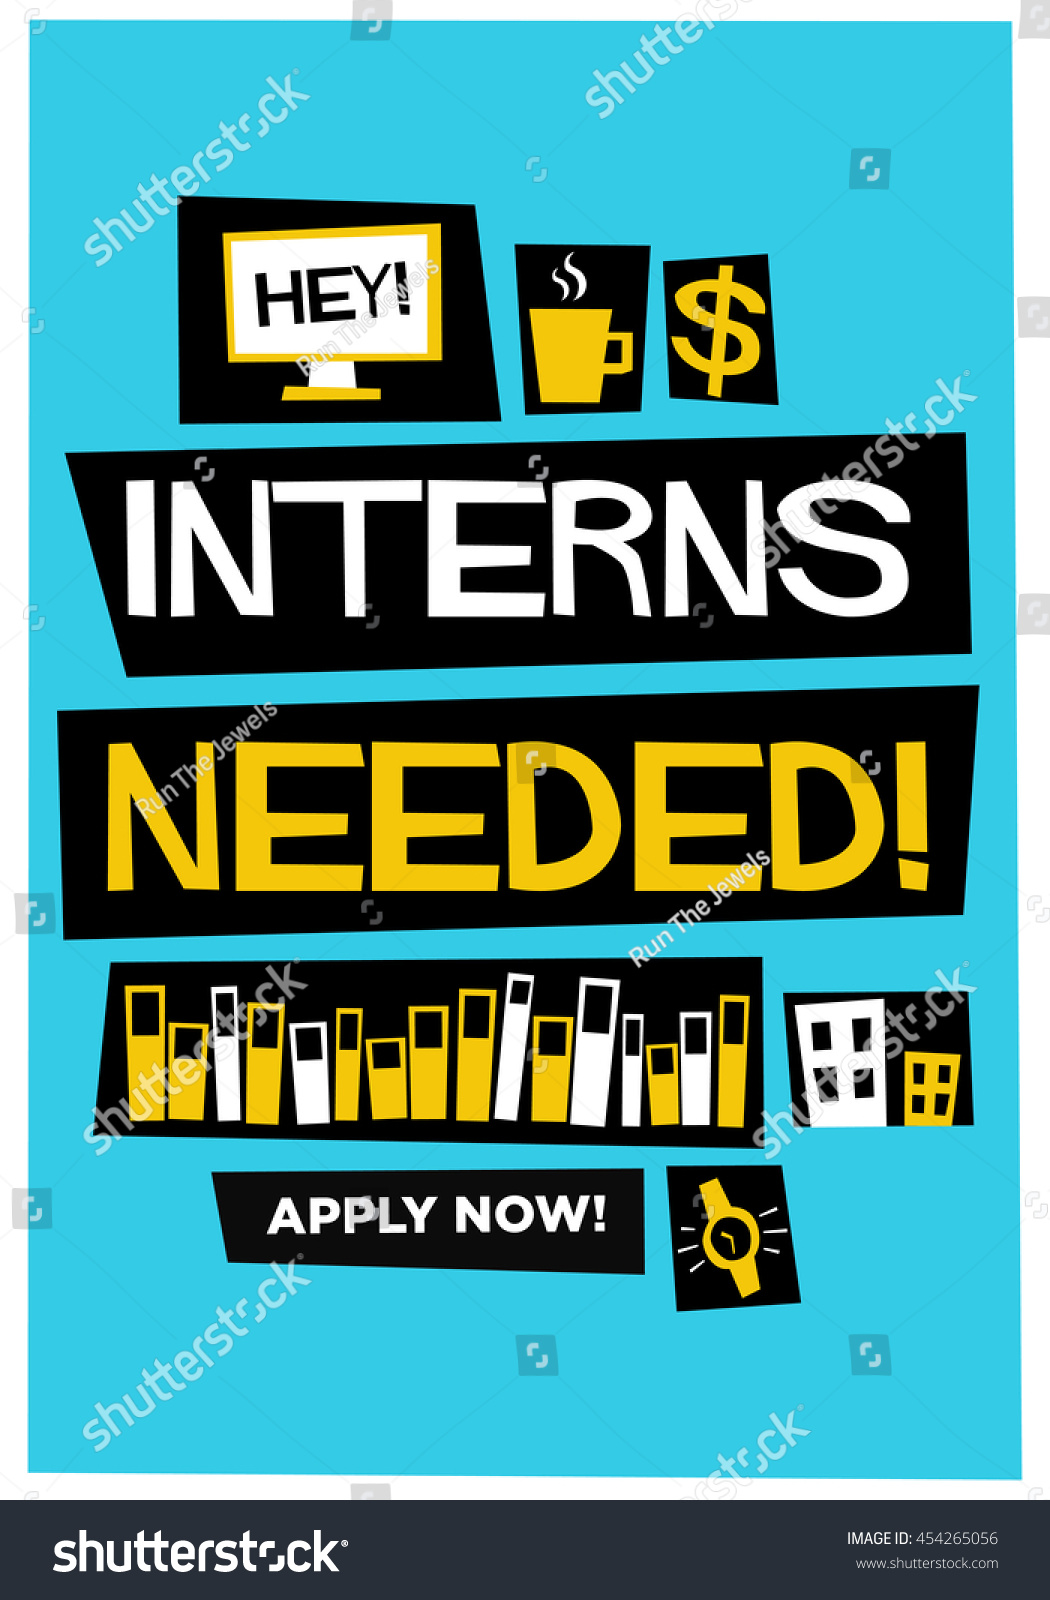 Poster design needed - Interns Needed Flat Style Vector Illustration Recruitment Poster Design